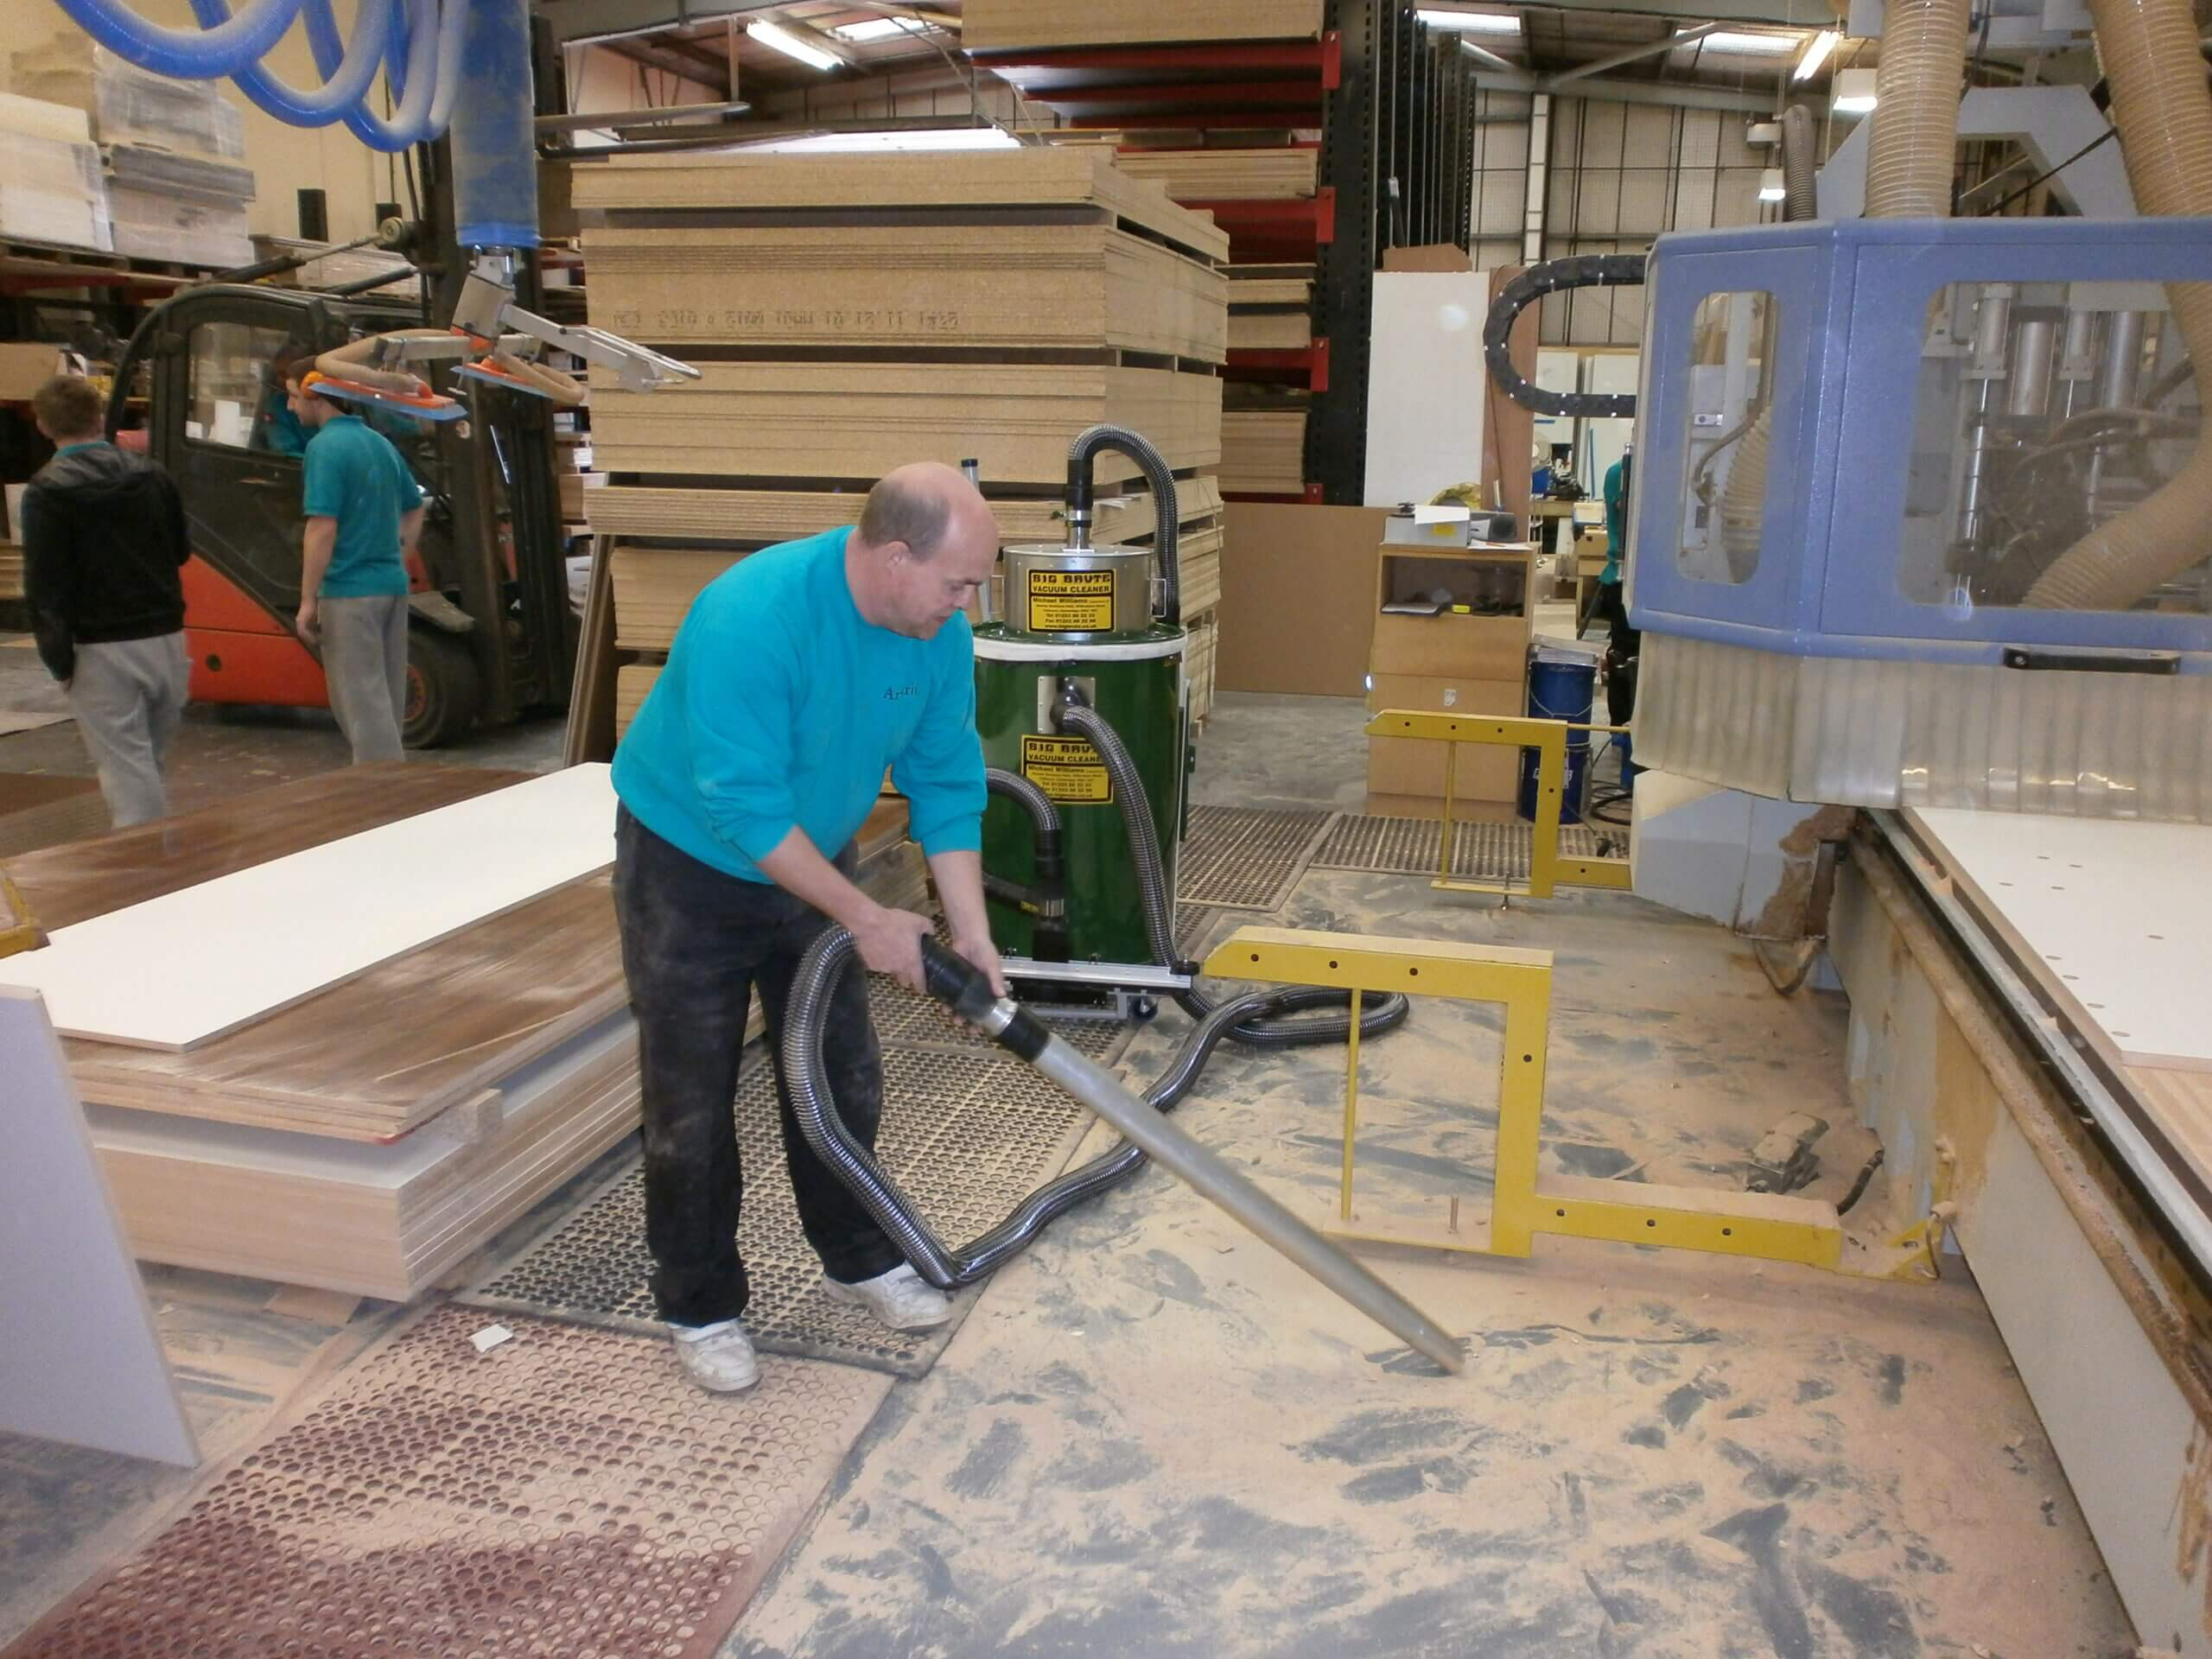 Amarii Southern Ltd Cleaning Up Dust With A Big Brute HEPA Industrial Vacuum Cleaner